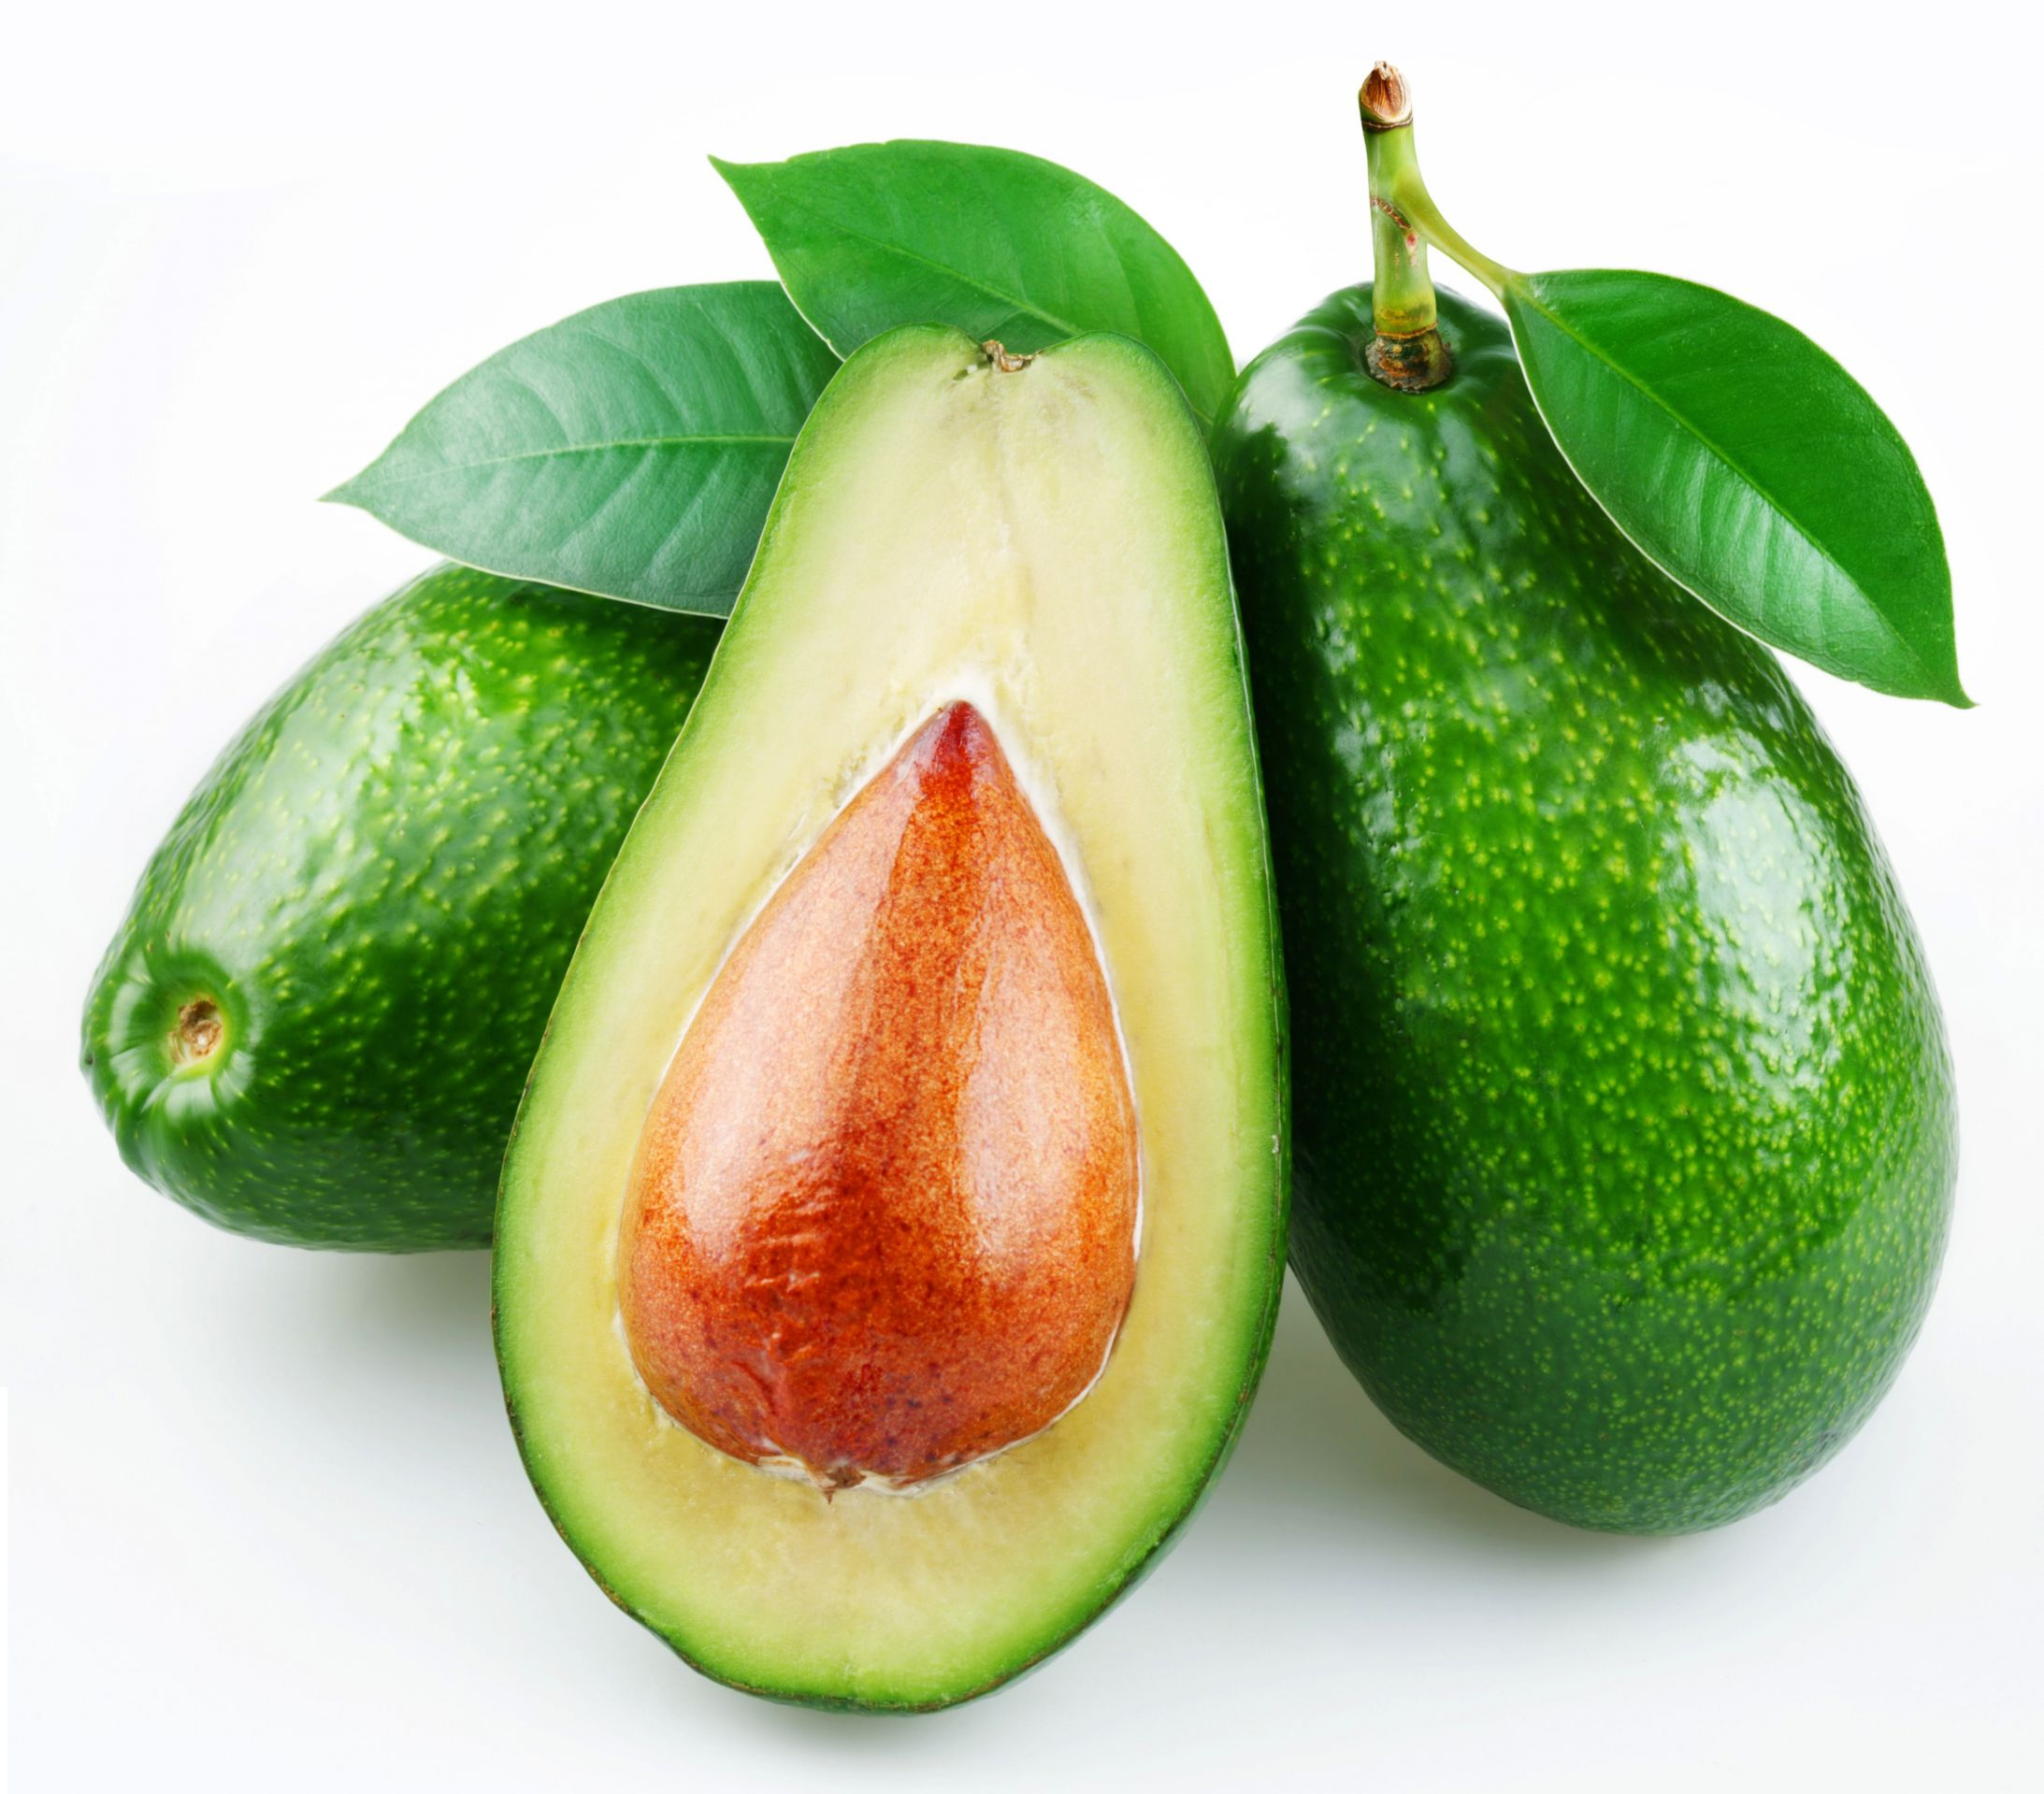 Avocado 5918425 l1 300x263 avocados 10 nutritional benefits